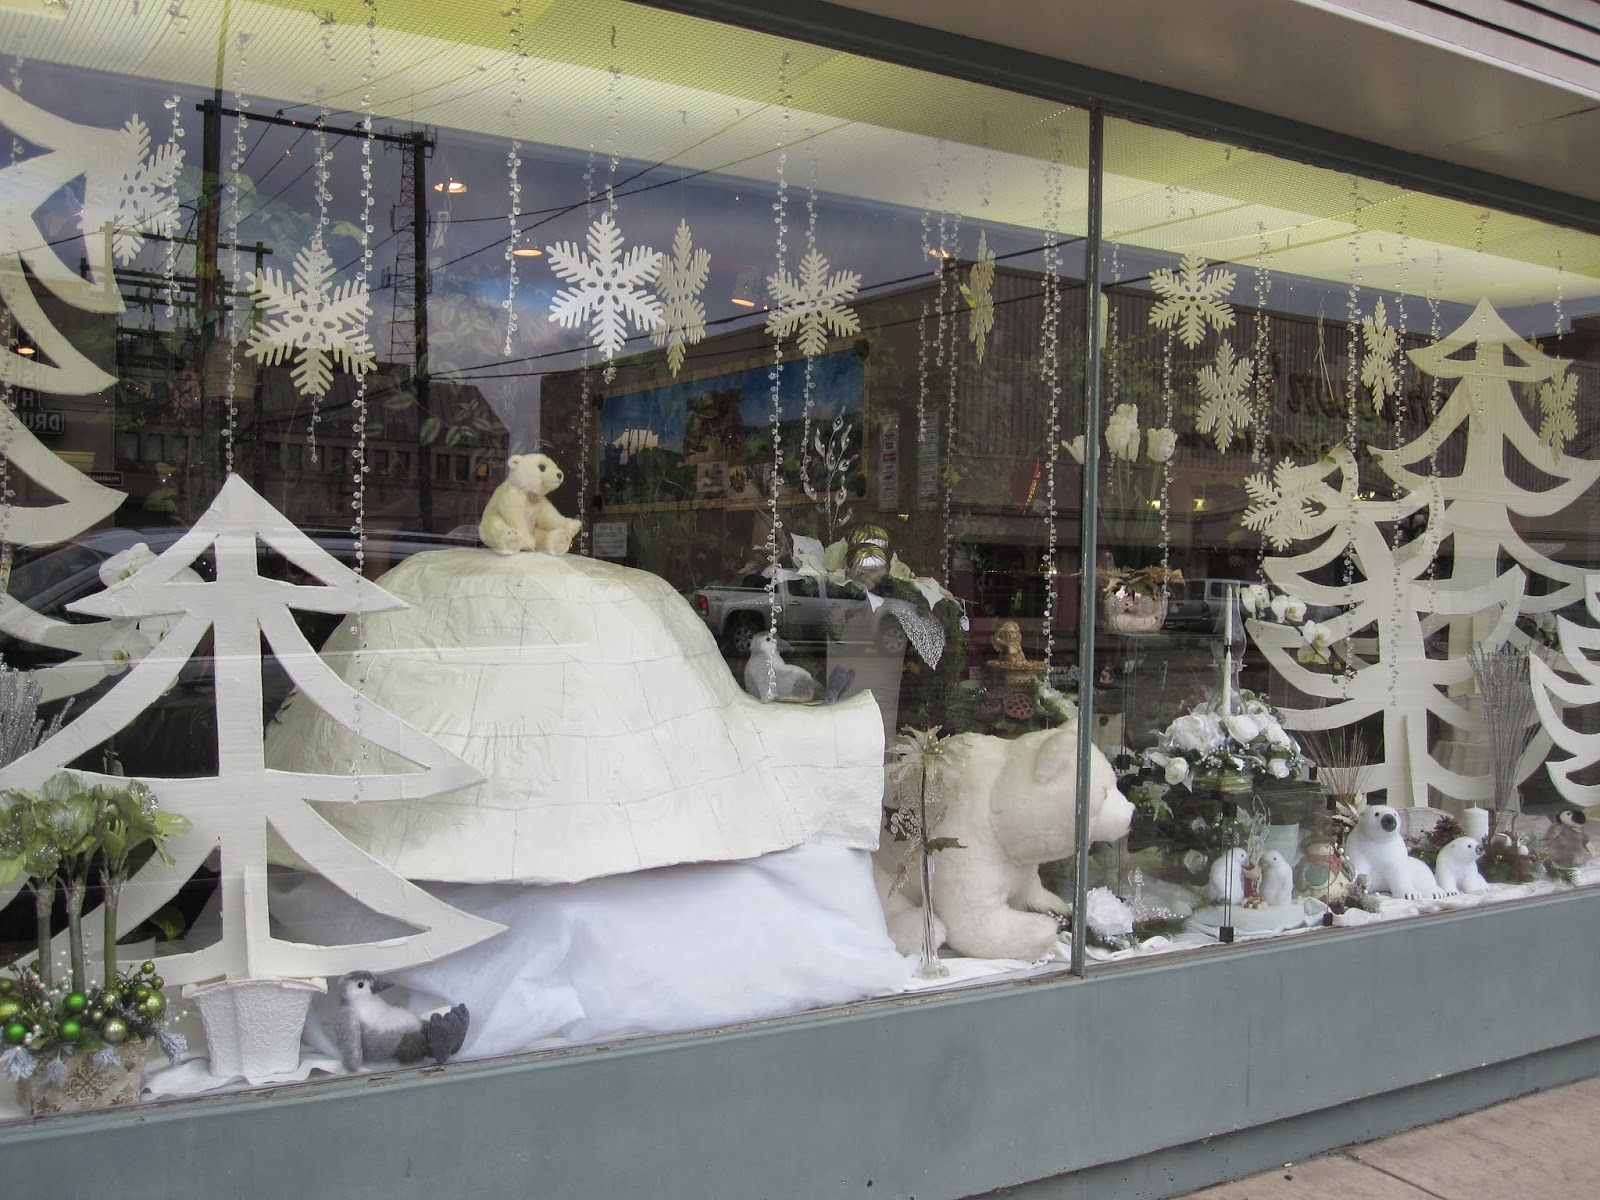 Flowers On The Roof: Store Front Winter Window Display (Making an ...